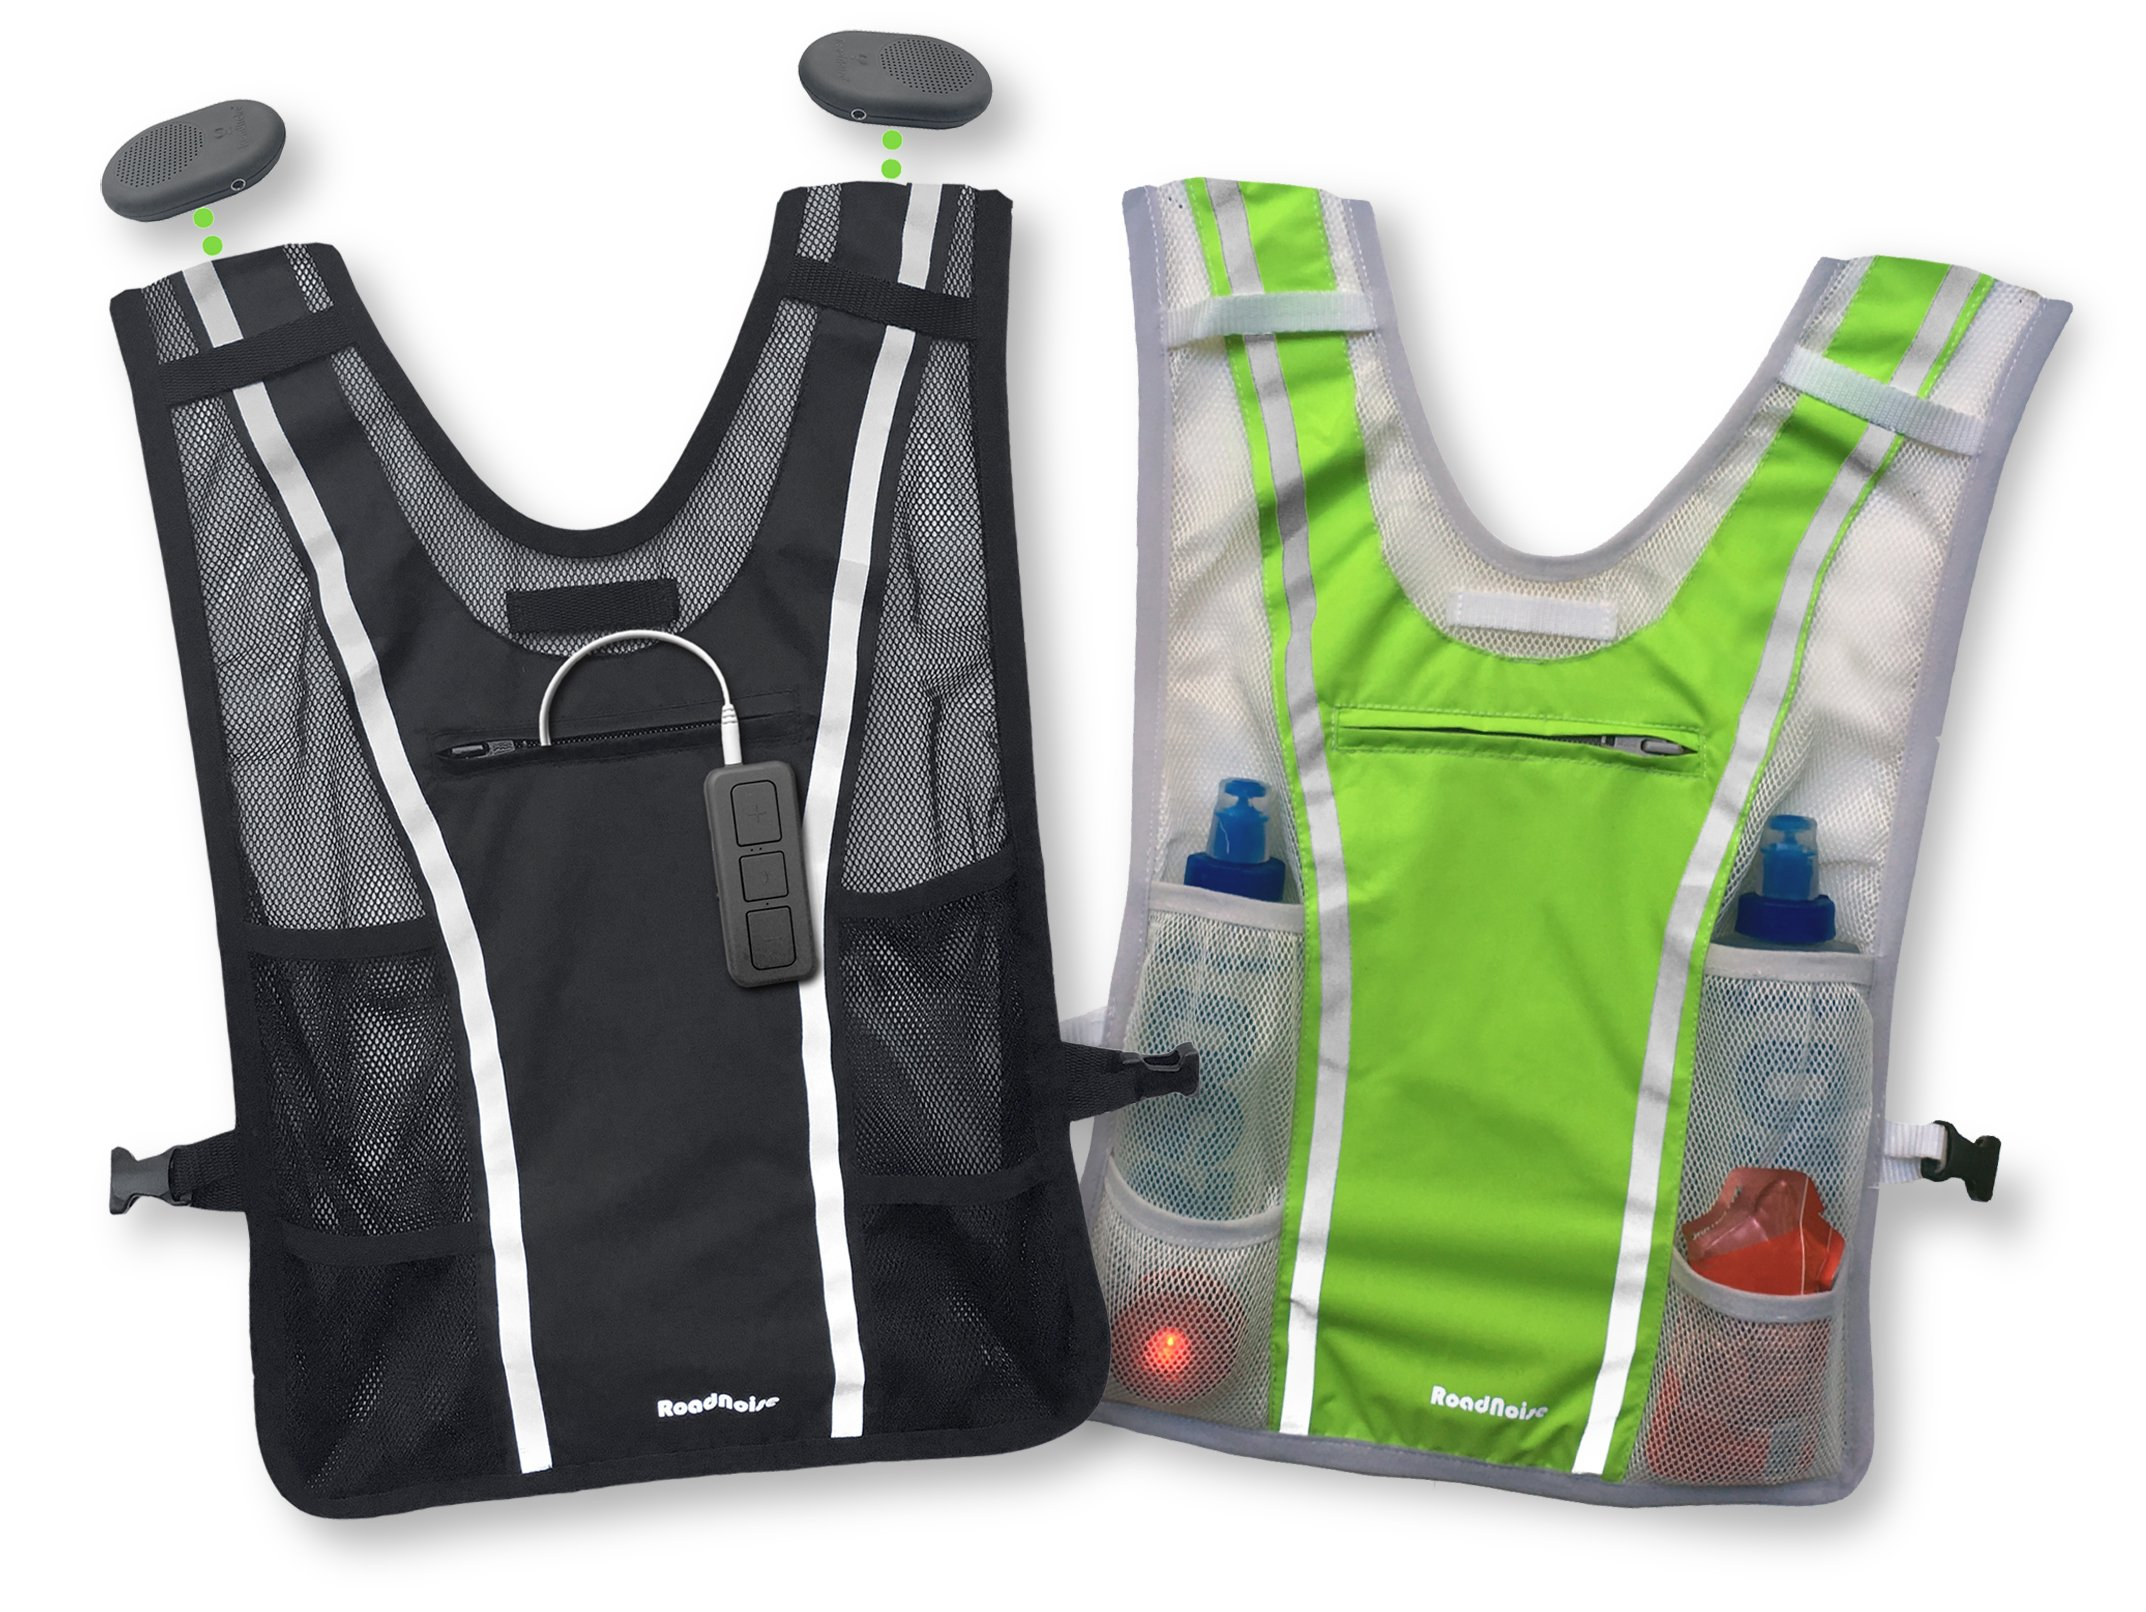 Roadnoise Long Haul Vest Running and Cycling Vest with speakers. Safer running and riding with music. (Black, X-Small/Small)